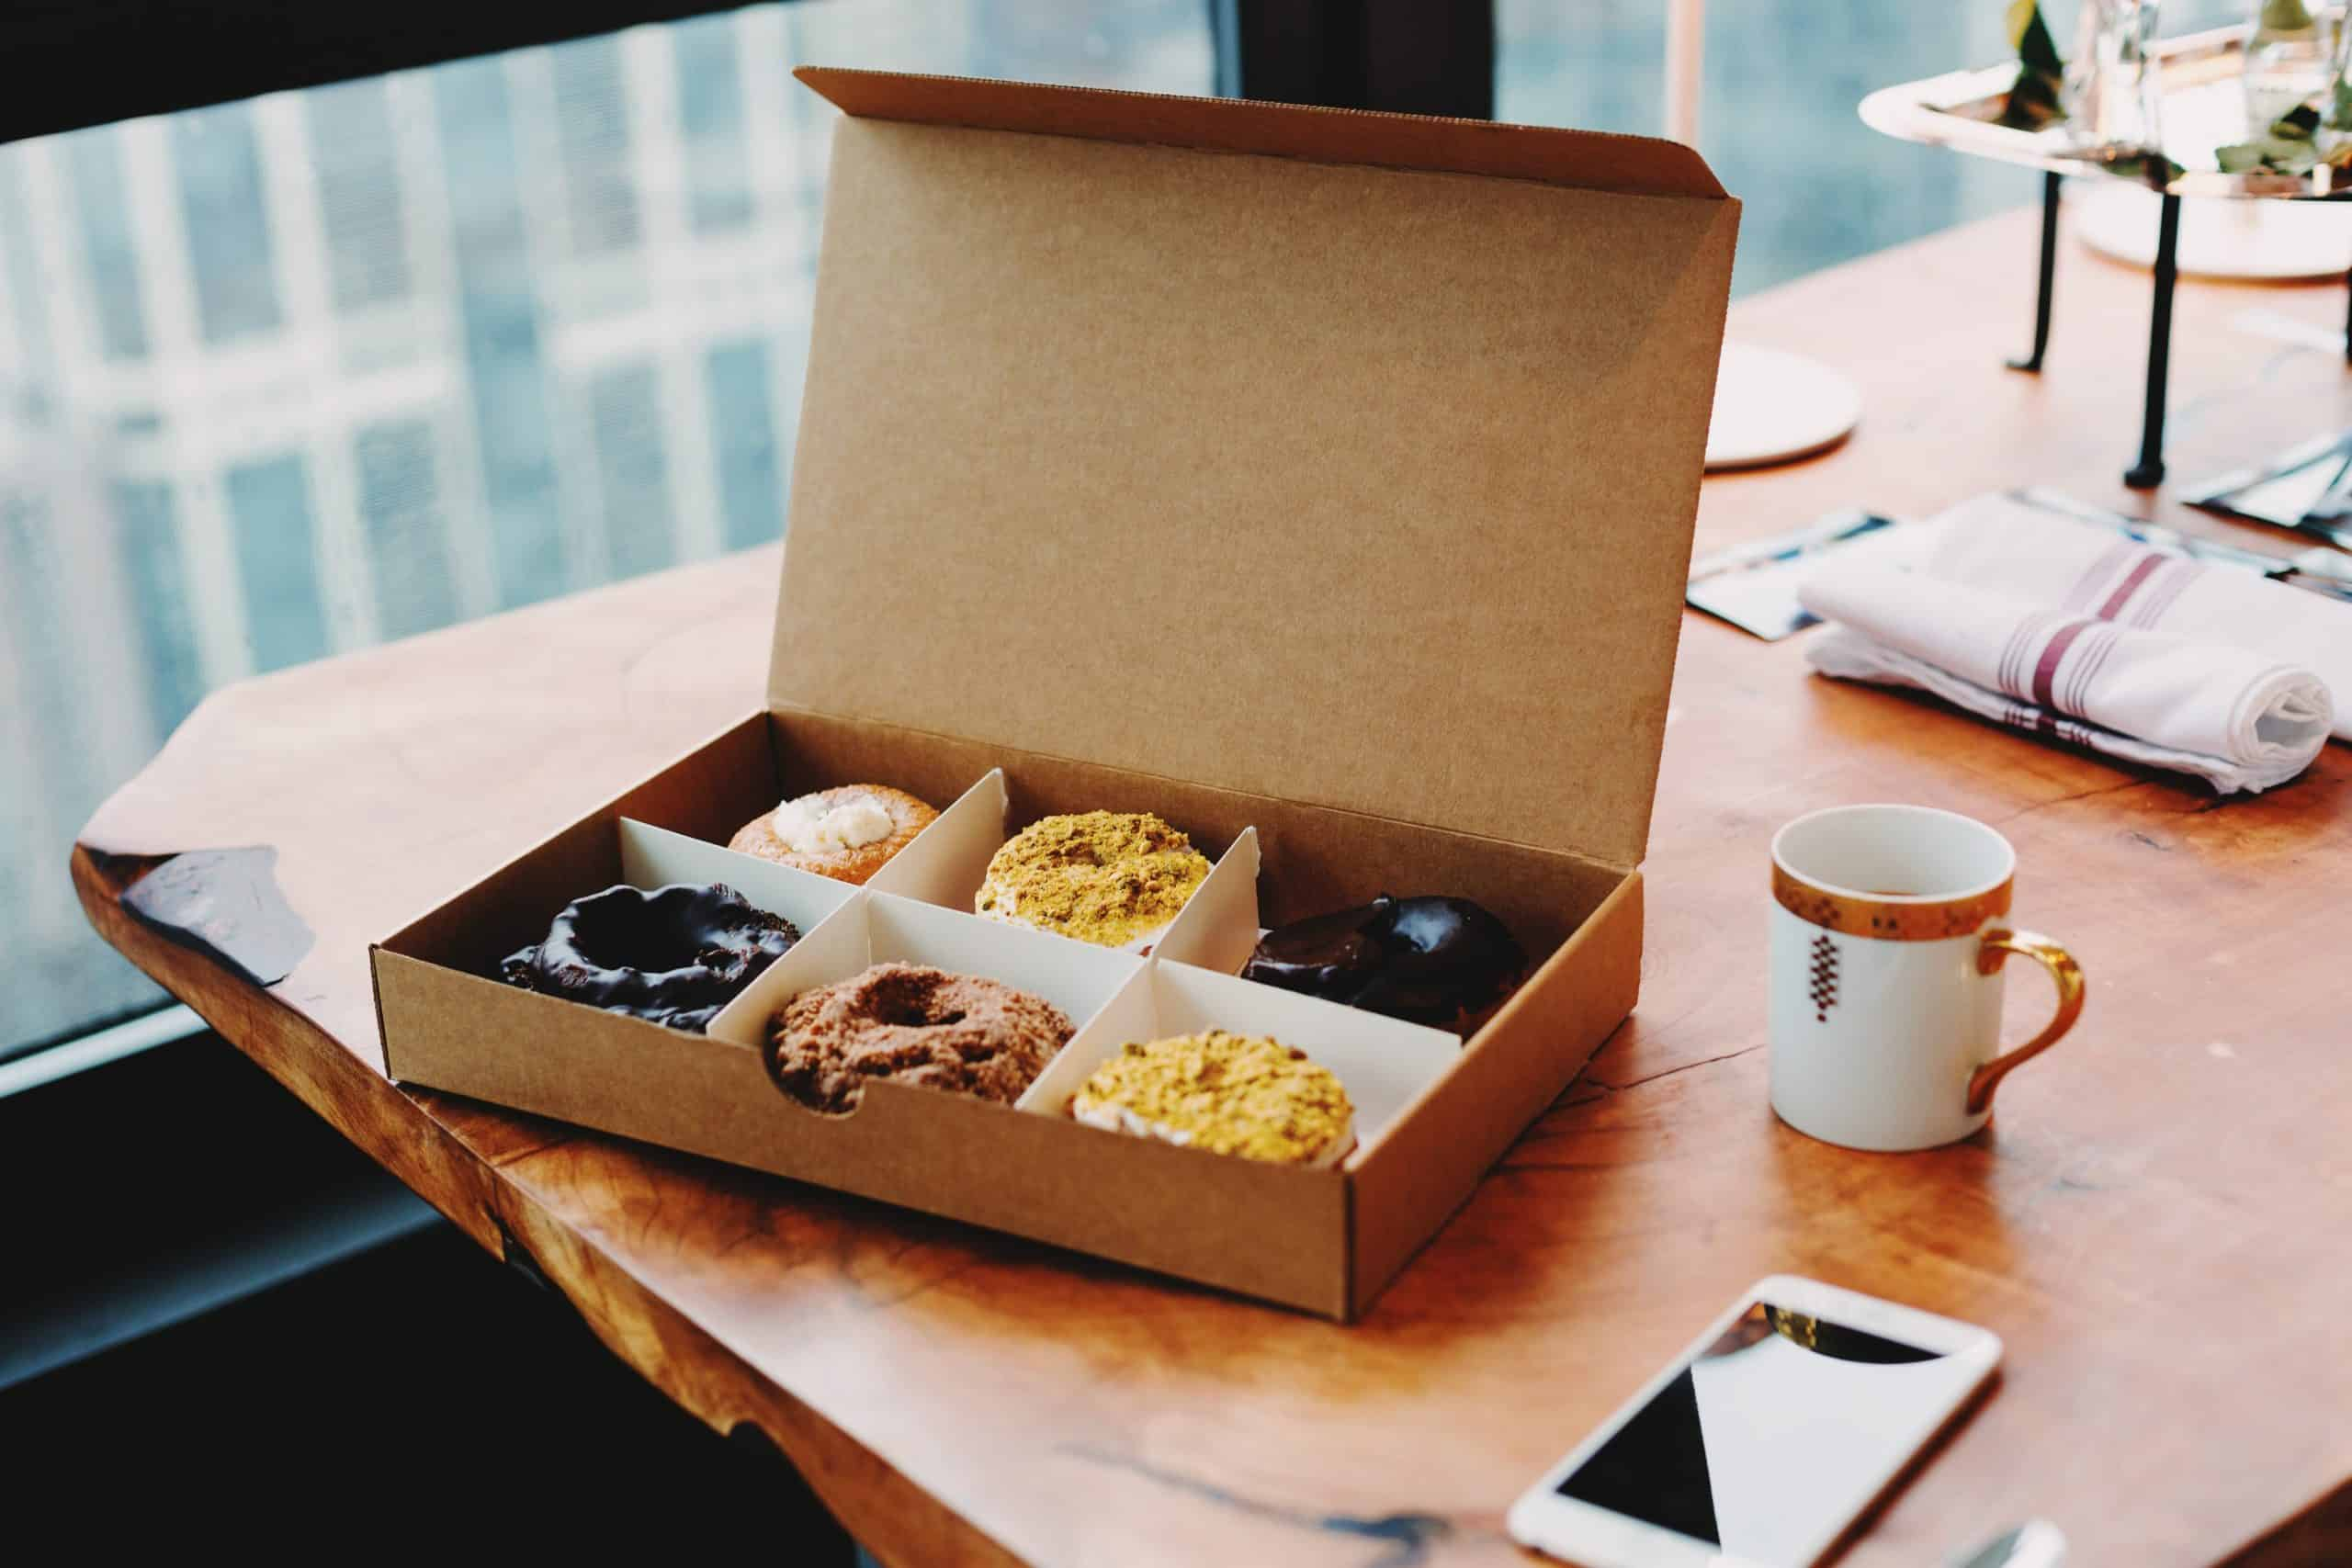 Box of donuts sitting on a desk